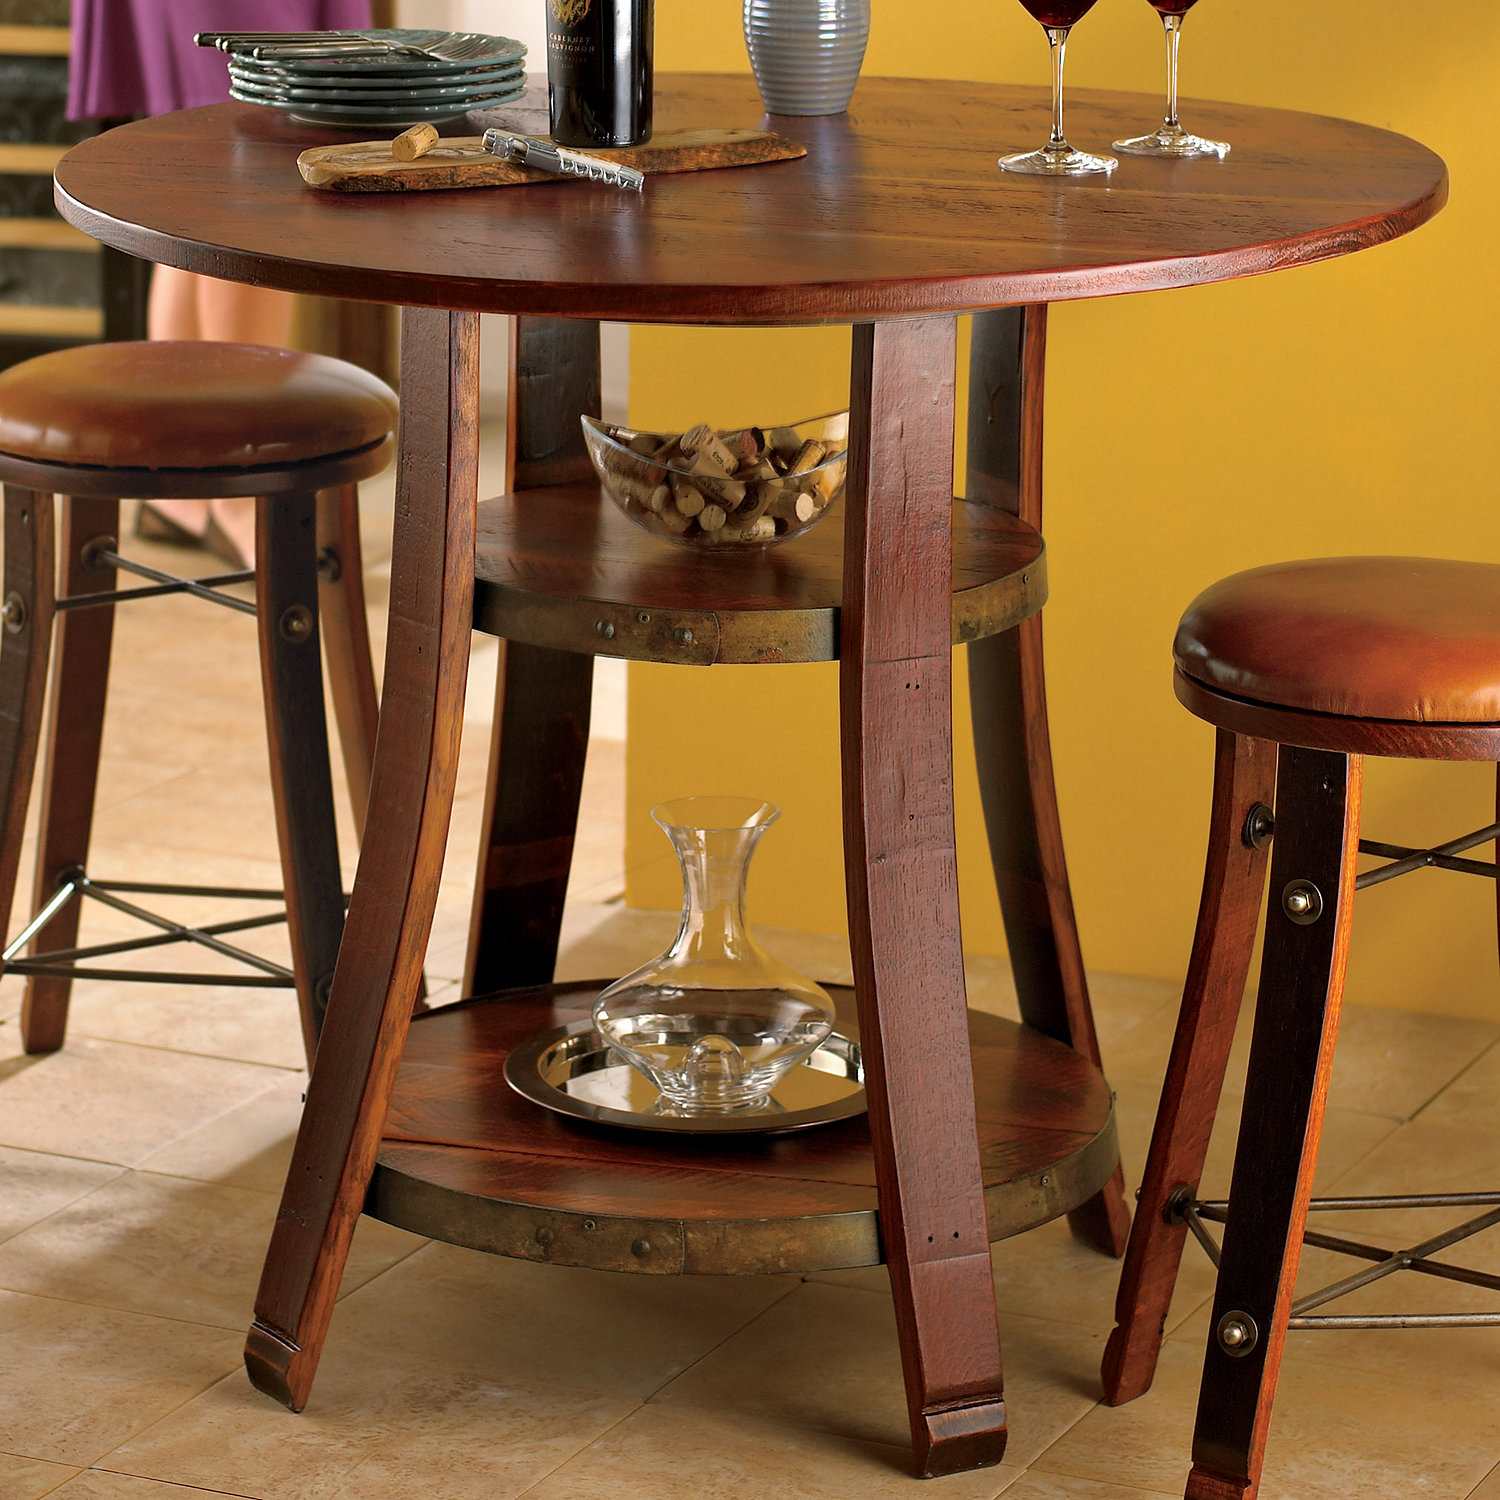 ideas enchanting bistro tables for home furniture mosaic table indoor sets marble top accent tuscan hills blue metal bedside round with leaf square patio cover gold garden stool